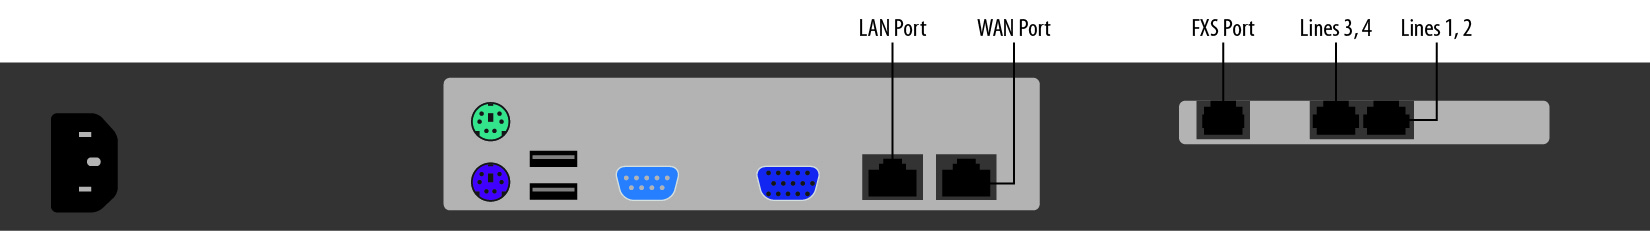 cudatel_port_diagrams-270.jpg